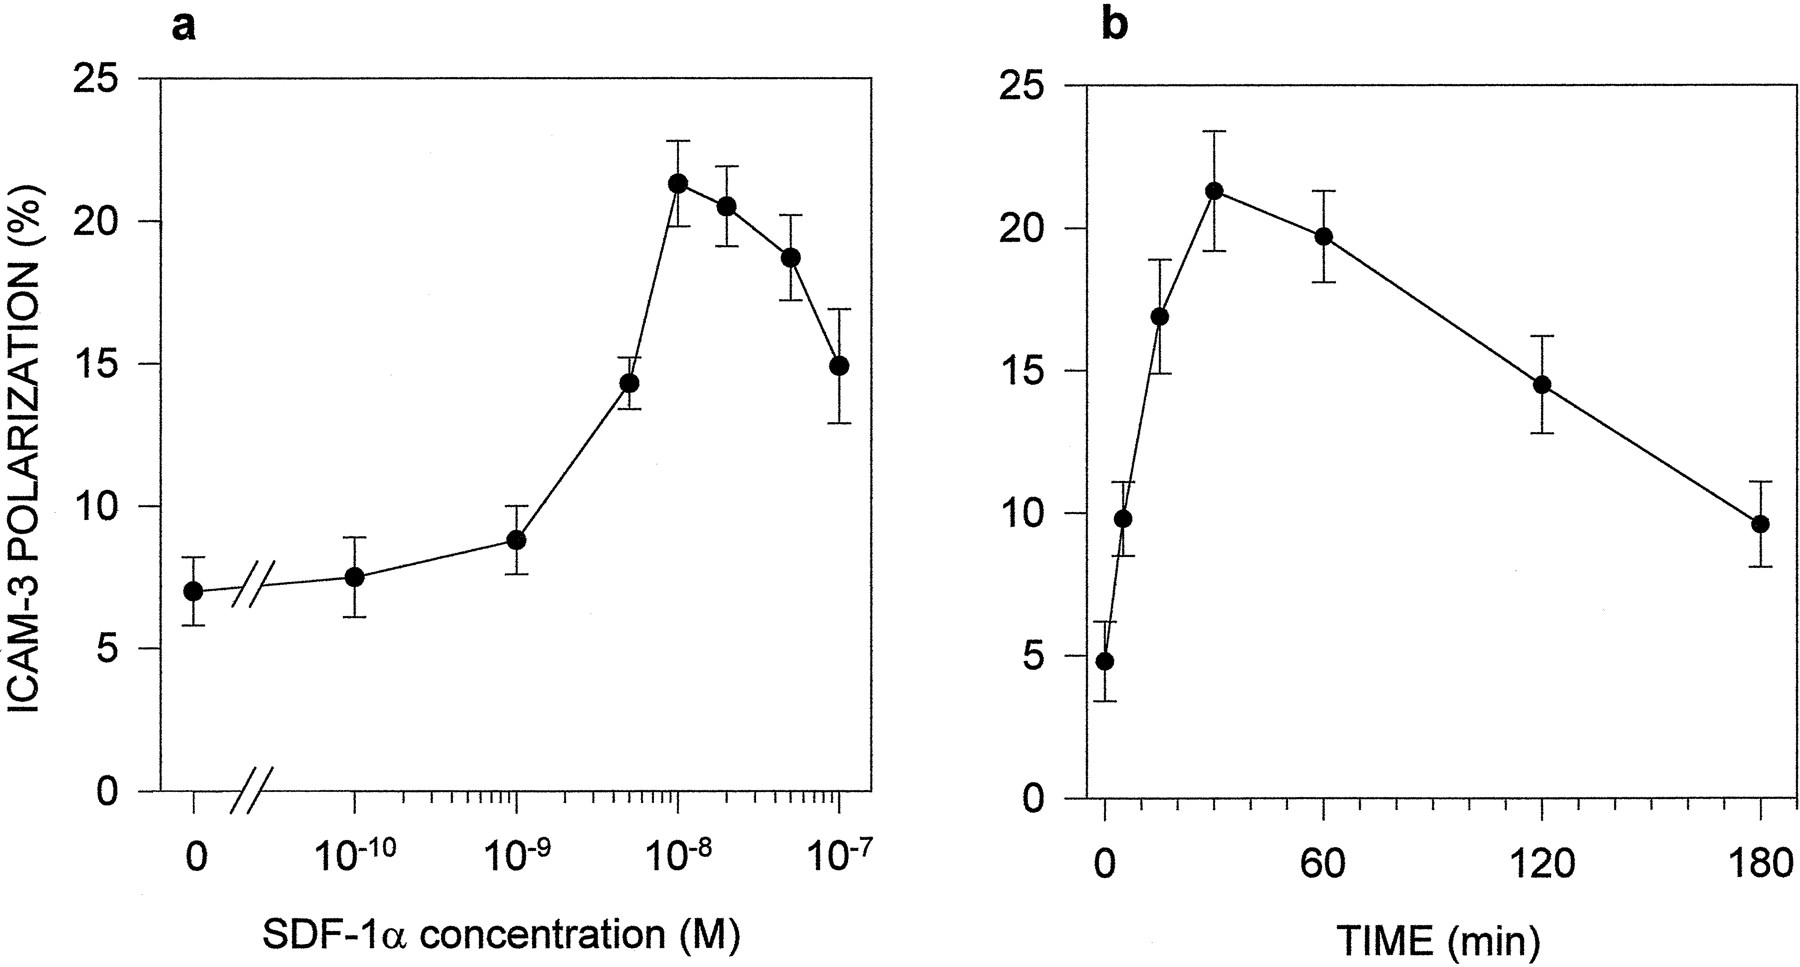 Involvement Of Phosphatidylinositol 3 Kinase In Stromal Cell Derived 120 Motif Real Madrid Download Figure